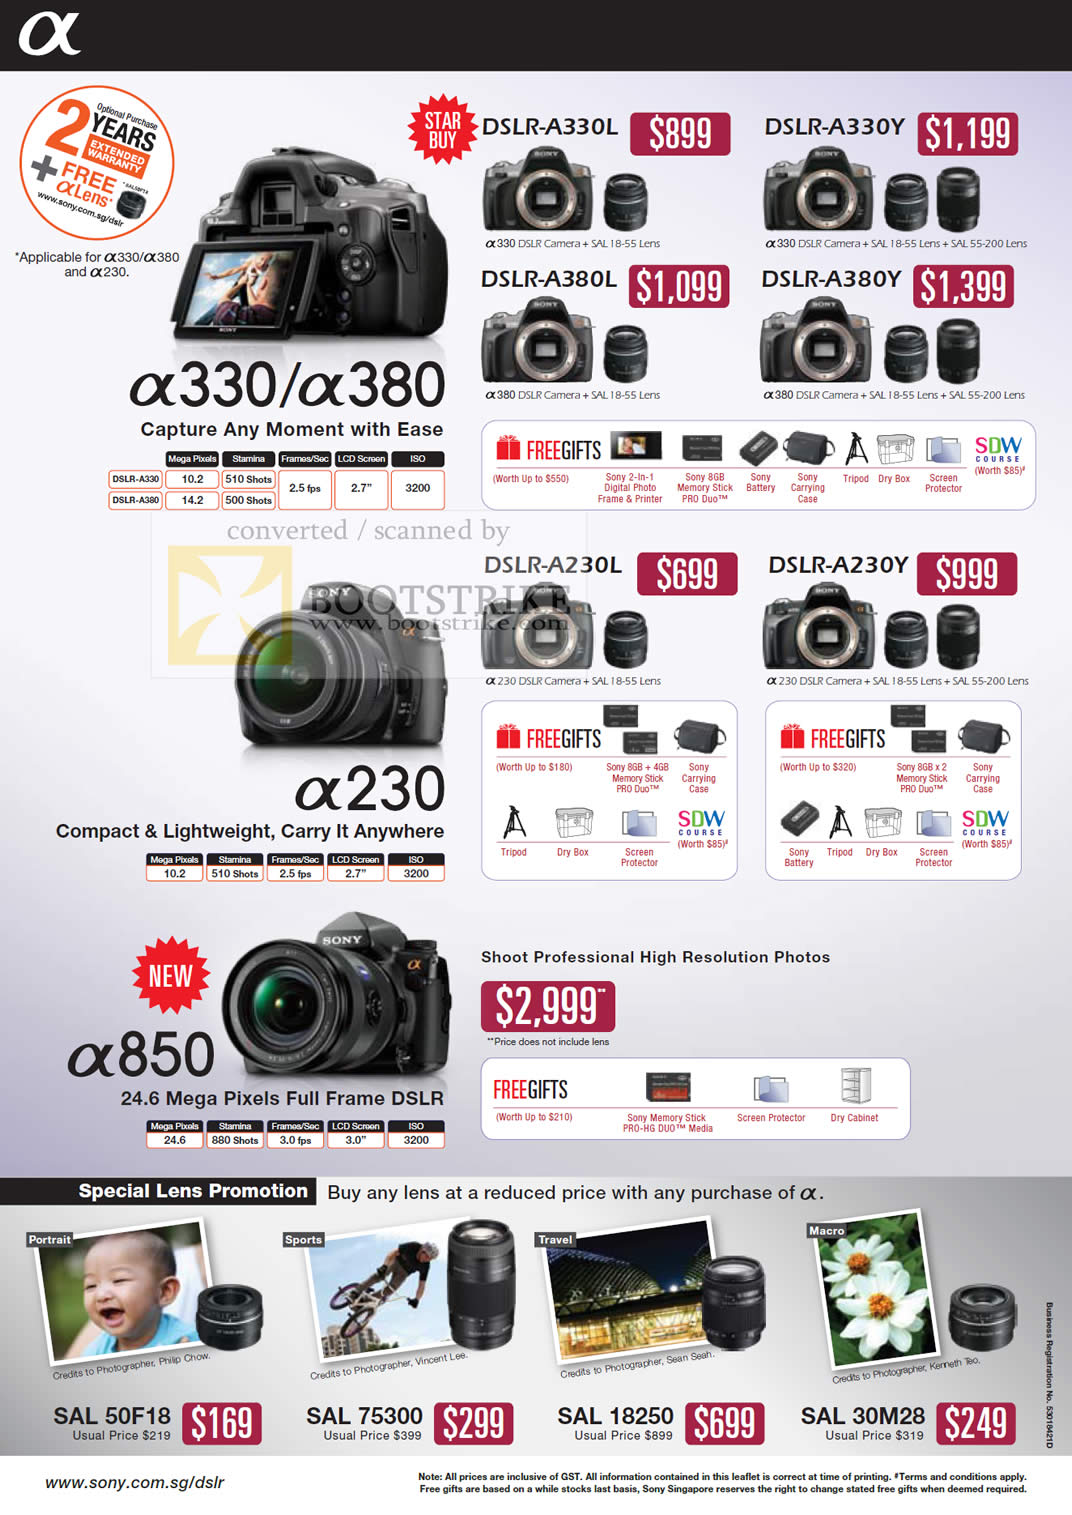 Camera List Of Sony Dslr Camera With Price sony alpha digital dslr cameras a330 a380 a230 a850 lens sitex 2009 price list image brochure of a850